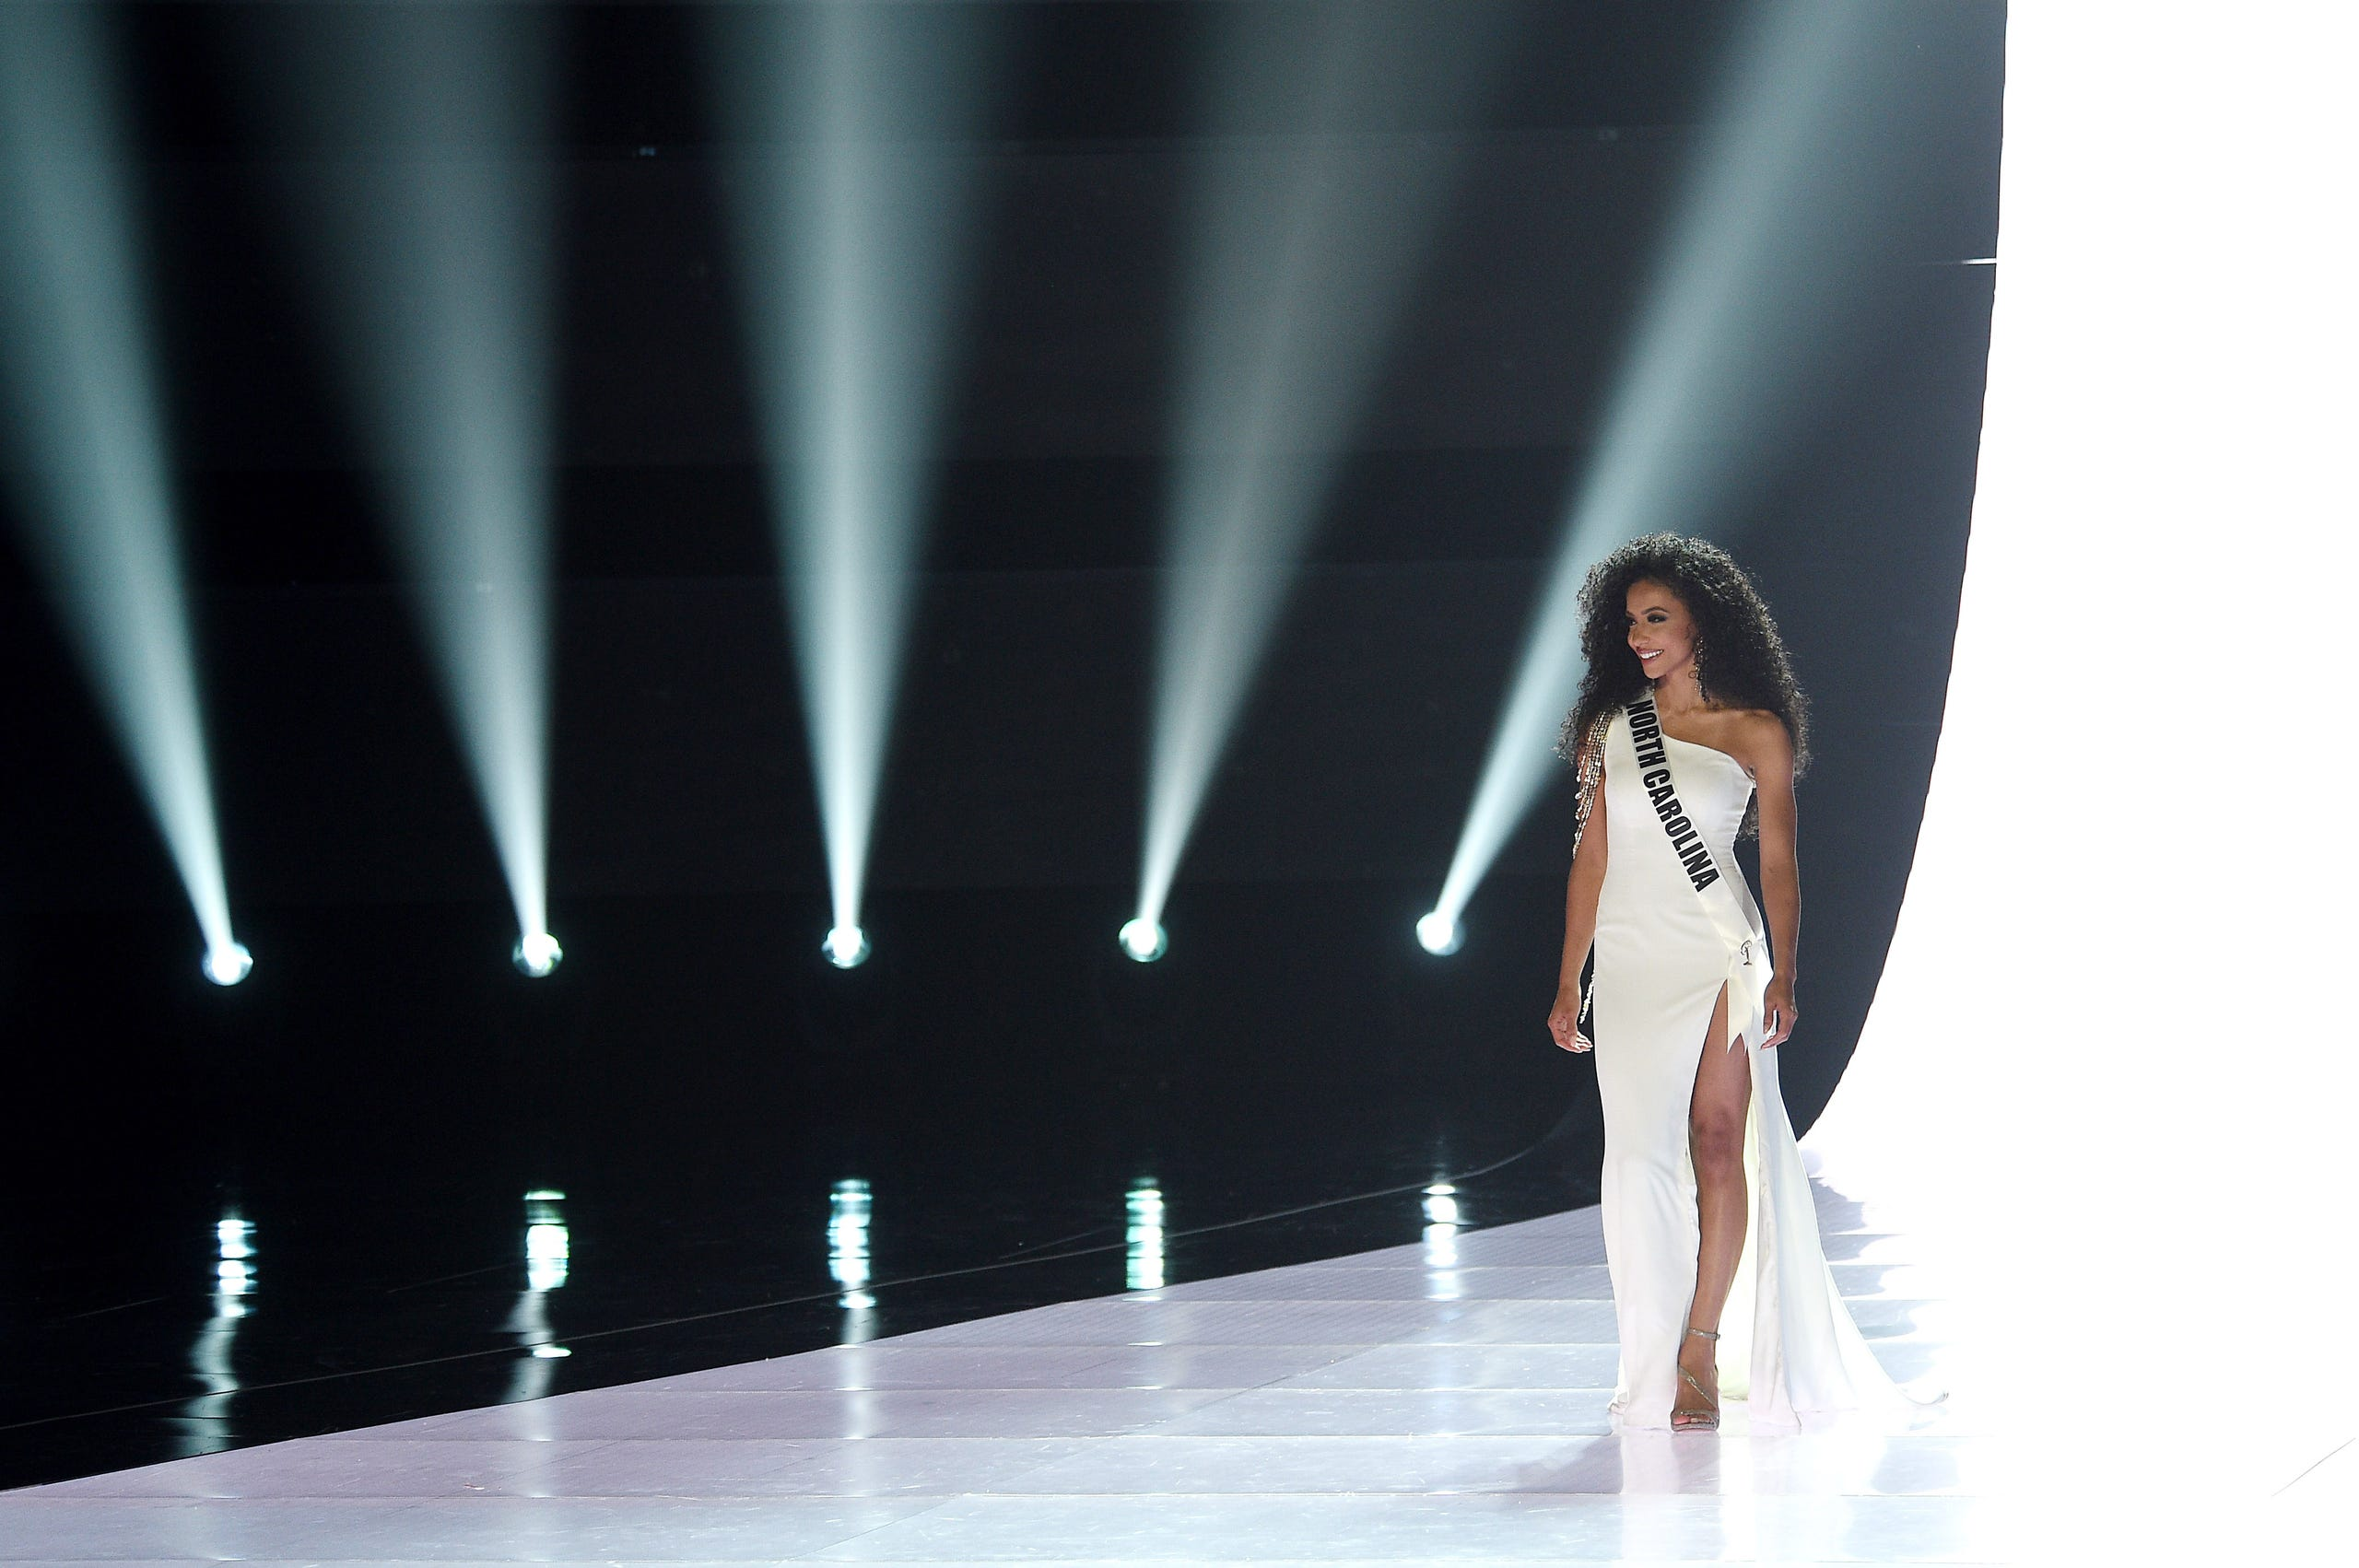 Miss North Carolina Chelsie Kryst competes during Miss USA 2019.